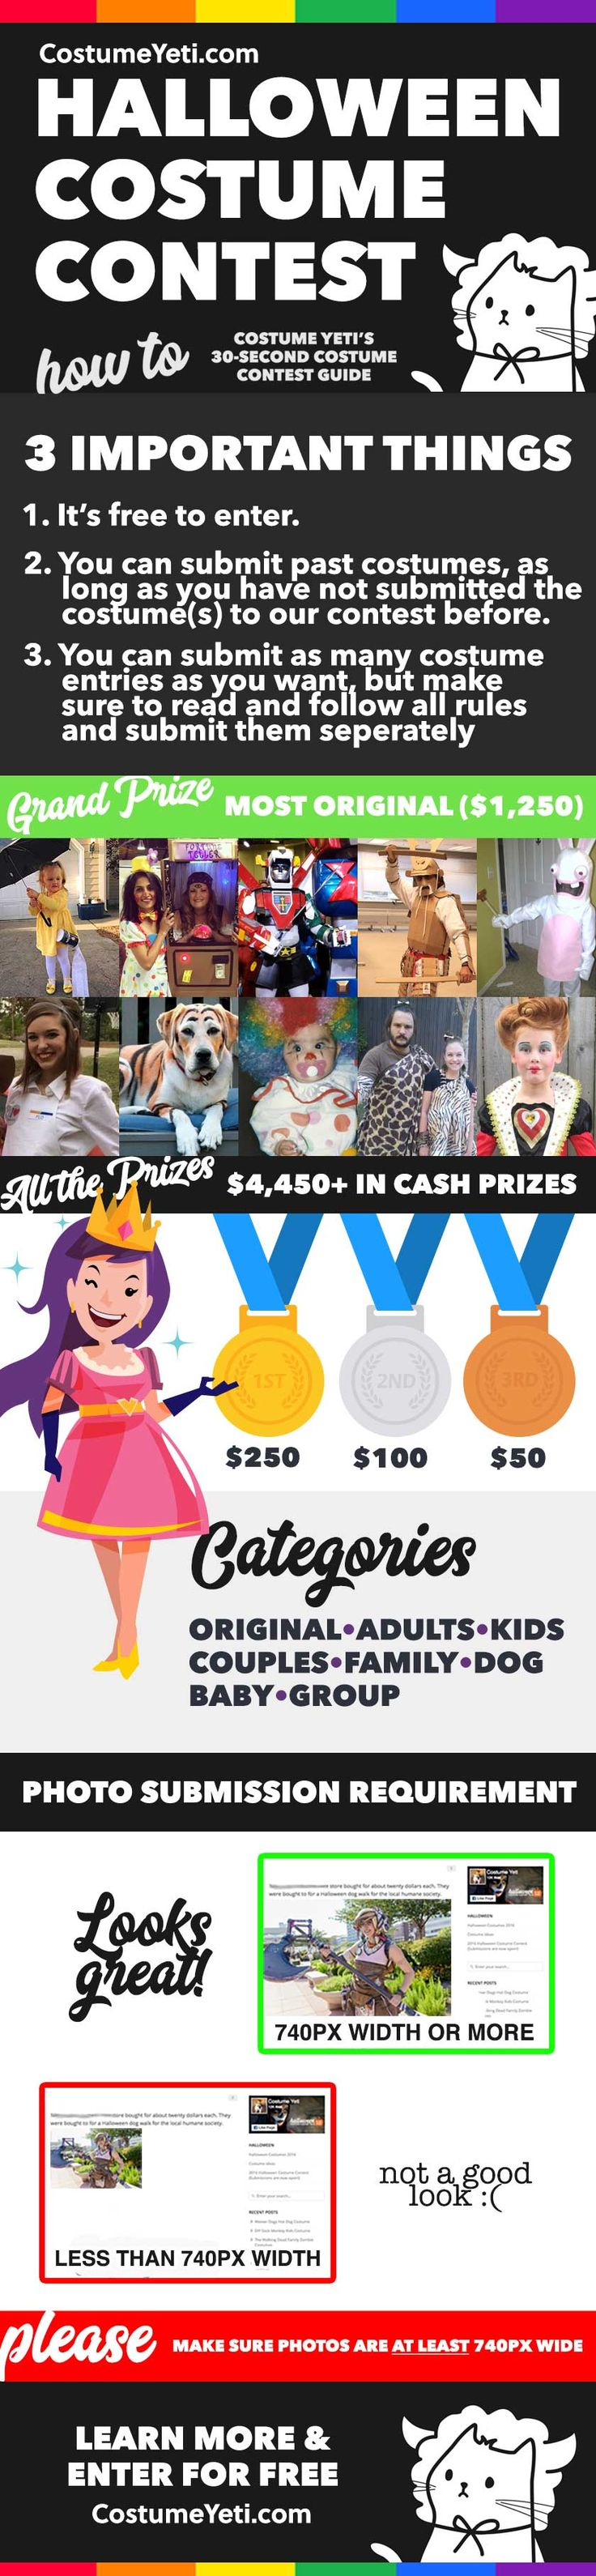 2017 Halloween Costume Contest 4450 In Cash And Prizes